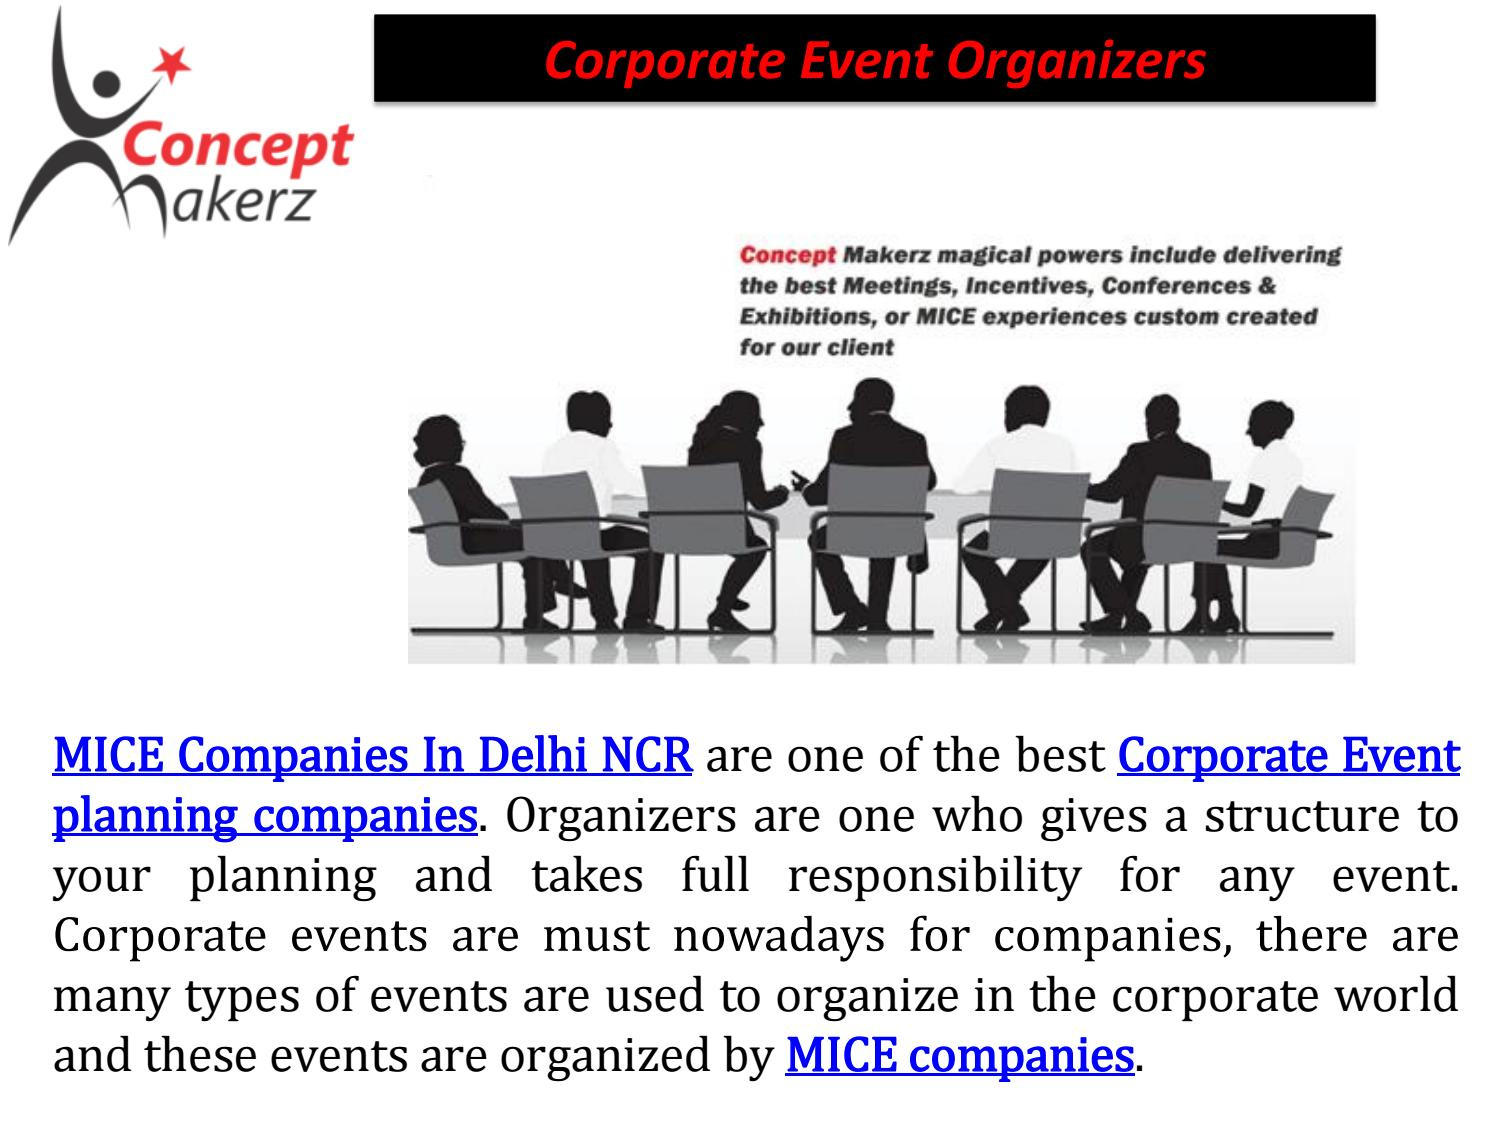 Corporate Event Companies Concept Makerz By Concept Makerz Issuu - Type-of-corporate-events